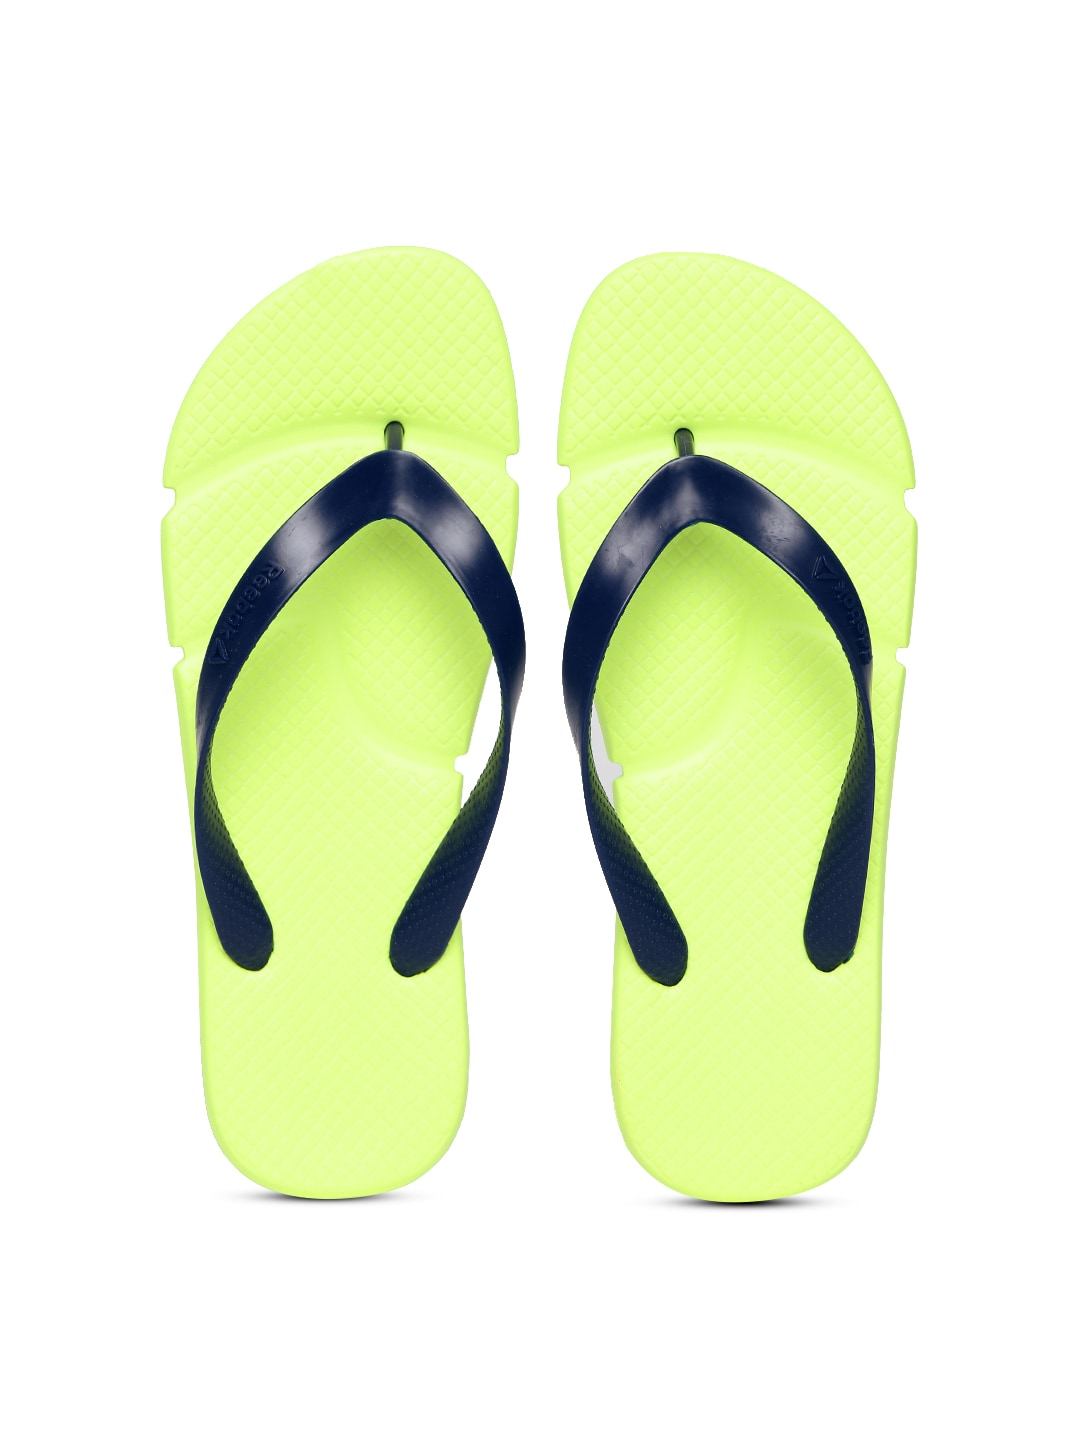 034d706e3 Reebok ar1624 Unisex Navy And Lime Green Fresco Textured Flip Flops- Price  in India